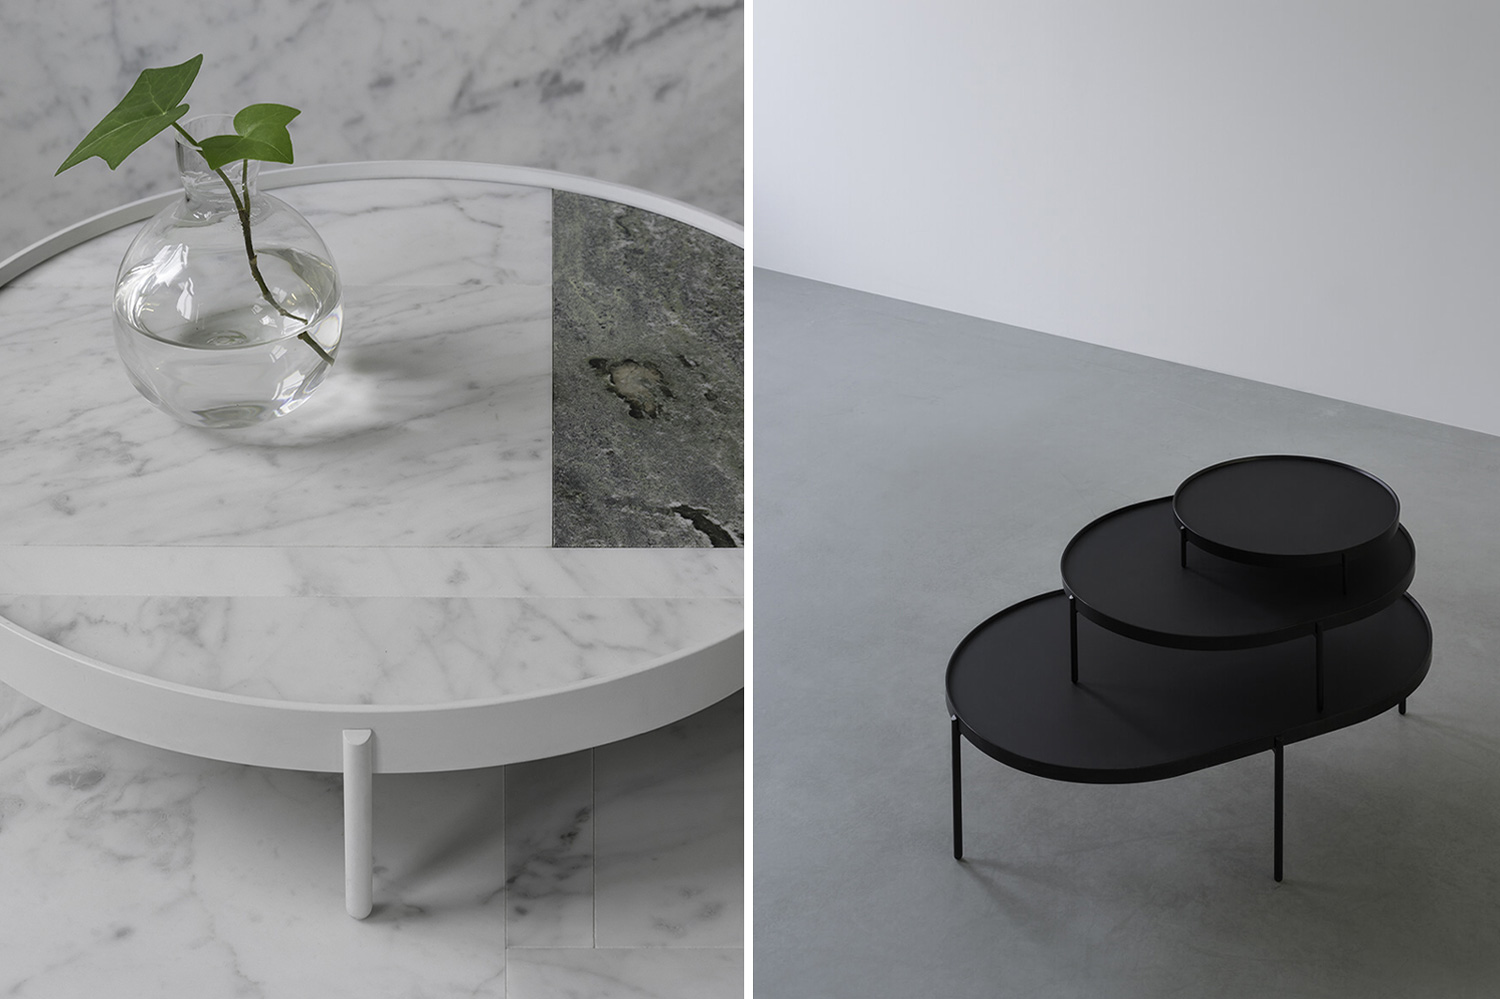 Patch Marble Tables by Note Design Studio for Menu in Collab with Norm Architects at Stockholm Design Week 2015 | Yellowtrace